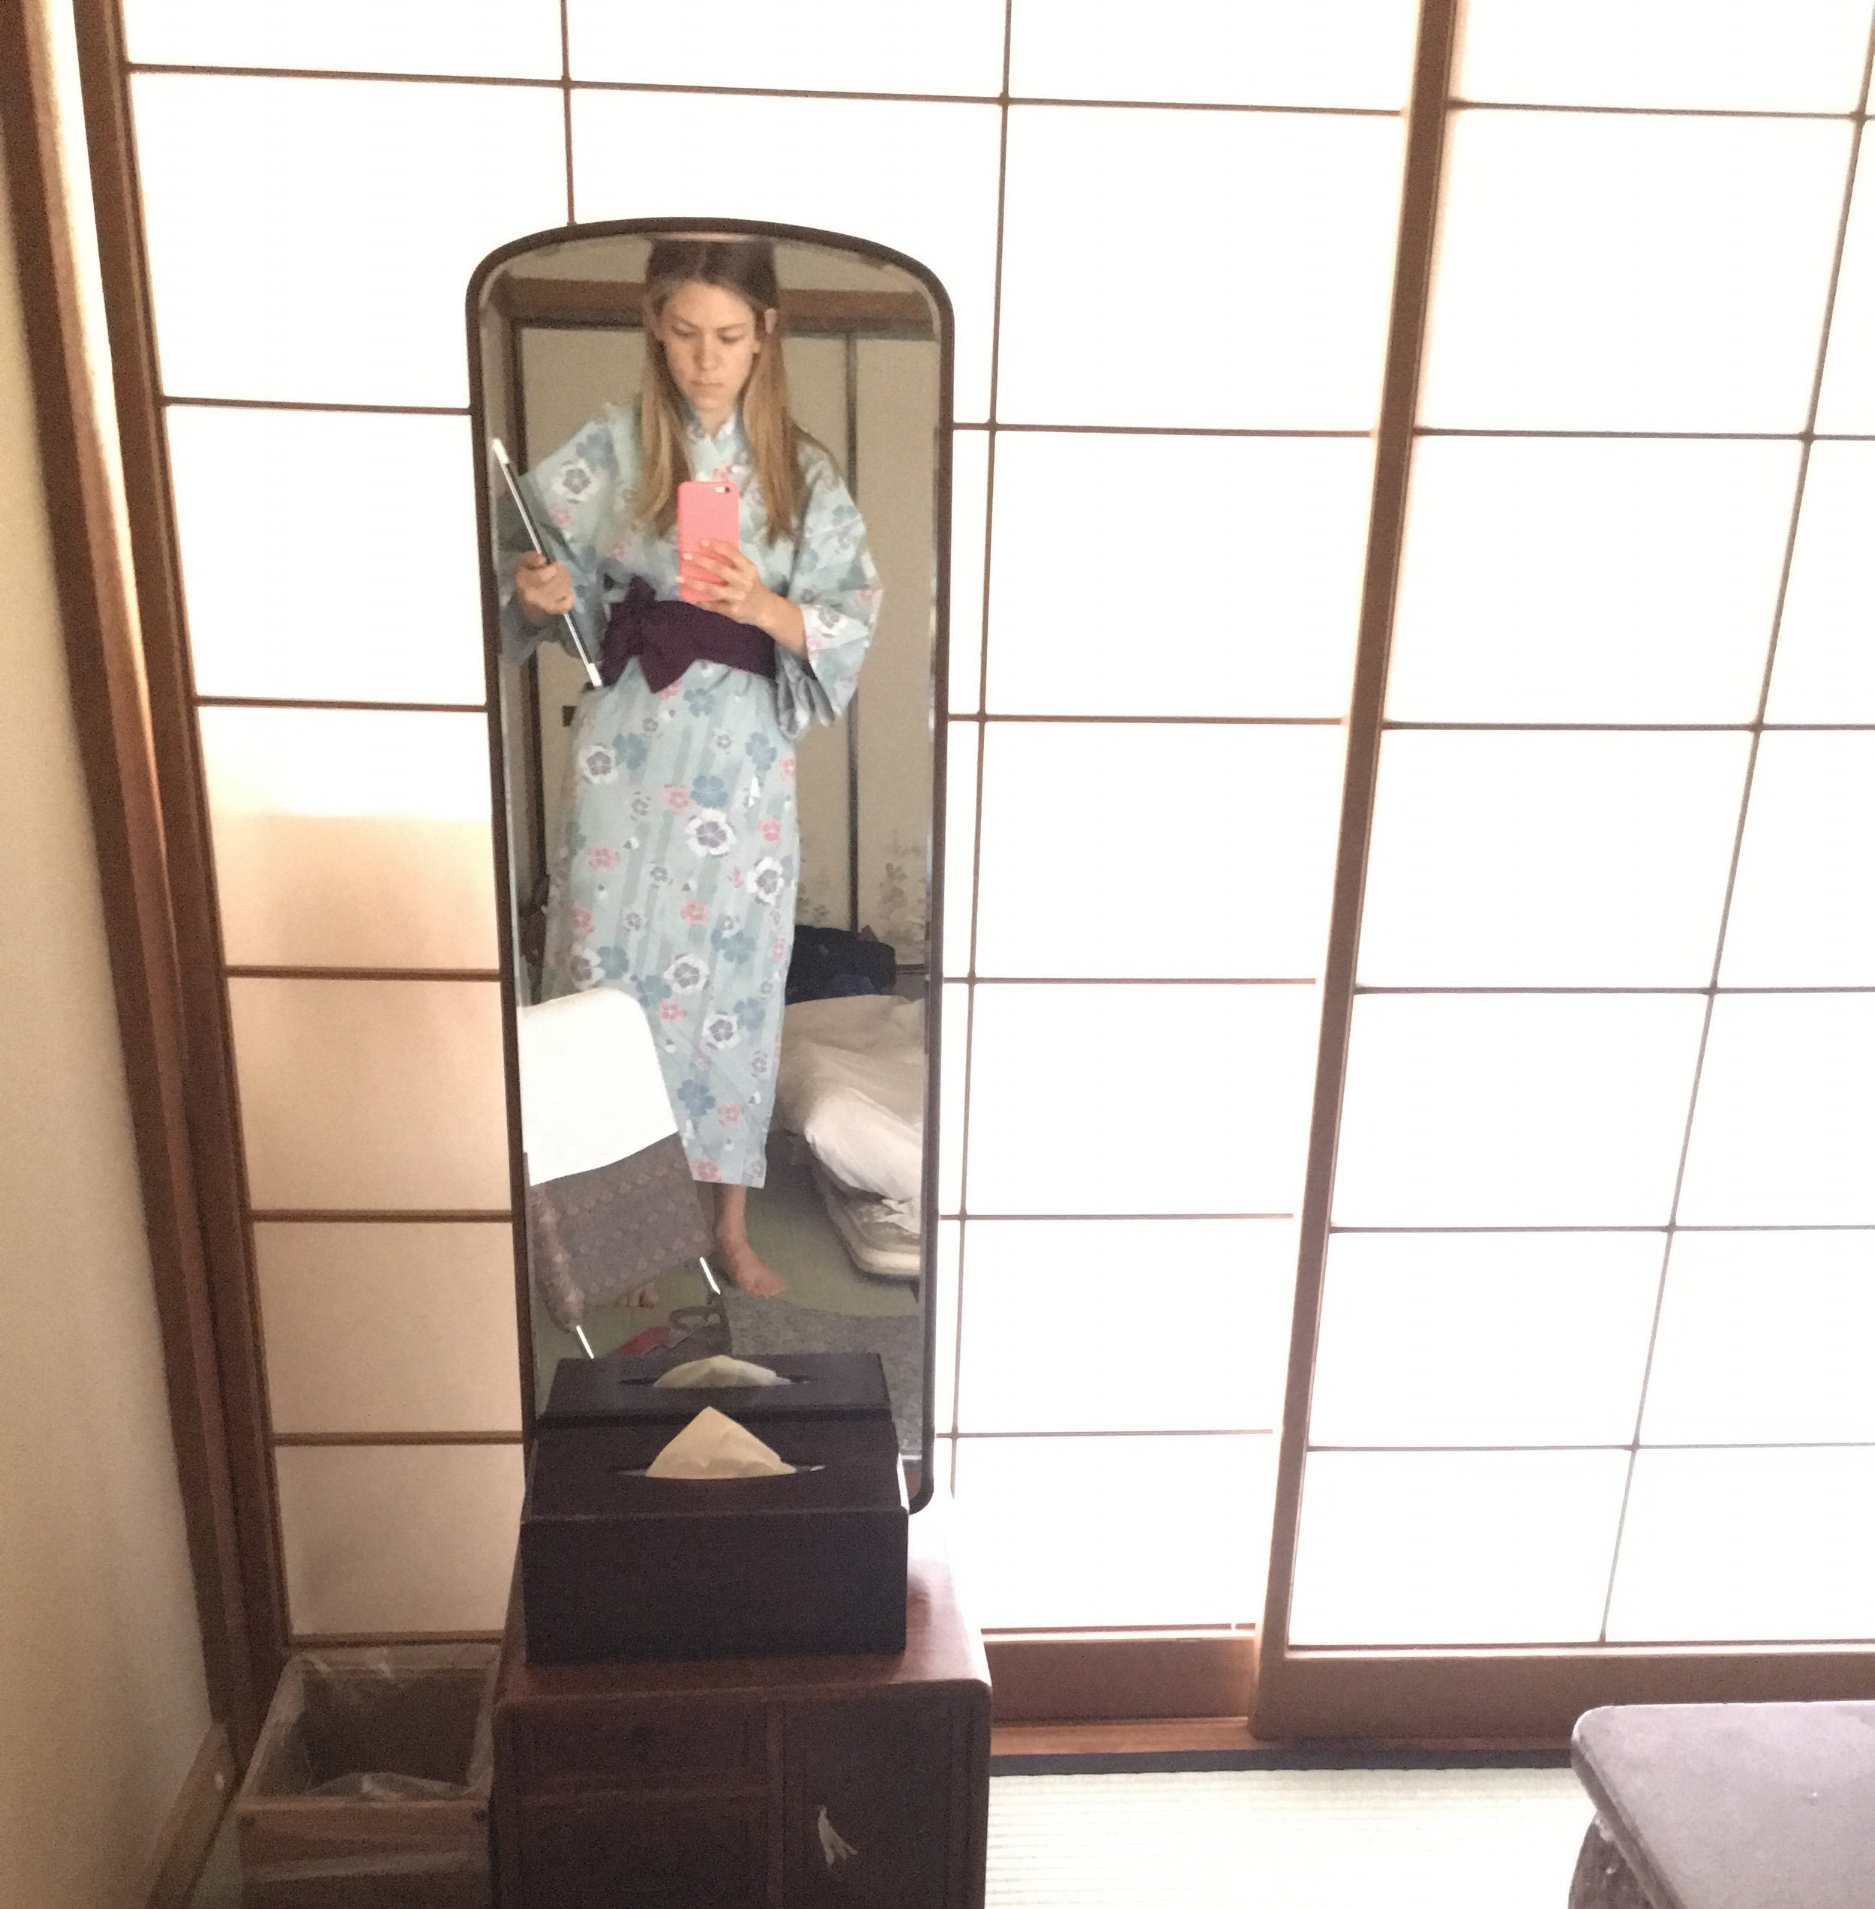 This is me at  Takagarawa Onsen  in Osenkaku, Japan.Seriously,click the link. We're talking full-blown remote hot spring vacation status when my friend Sarah said she wanted to chat about two potential next roles she was considering within her current company.I was so excited to hear about what new and exciting opportunities she was facing, so my kimono and I put aside the time early in the morning for a call! I know she'd be happy to do the same for me.